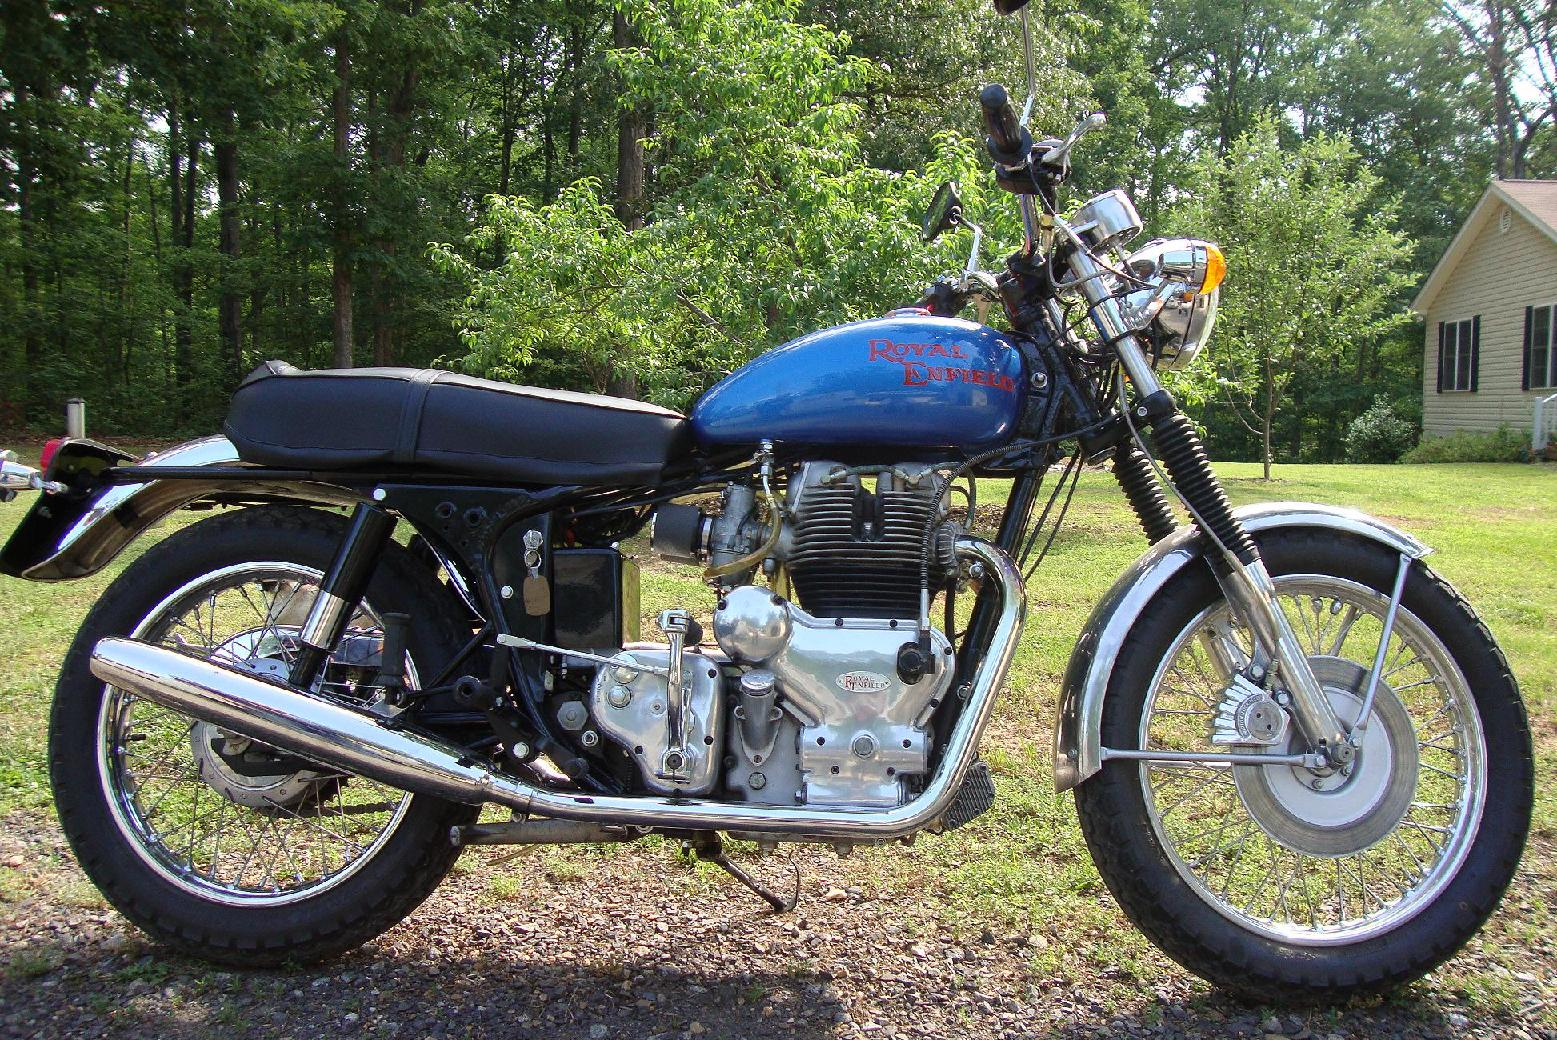 1968 Royal Enfield Interceptor MK1A rcycle.com